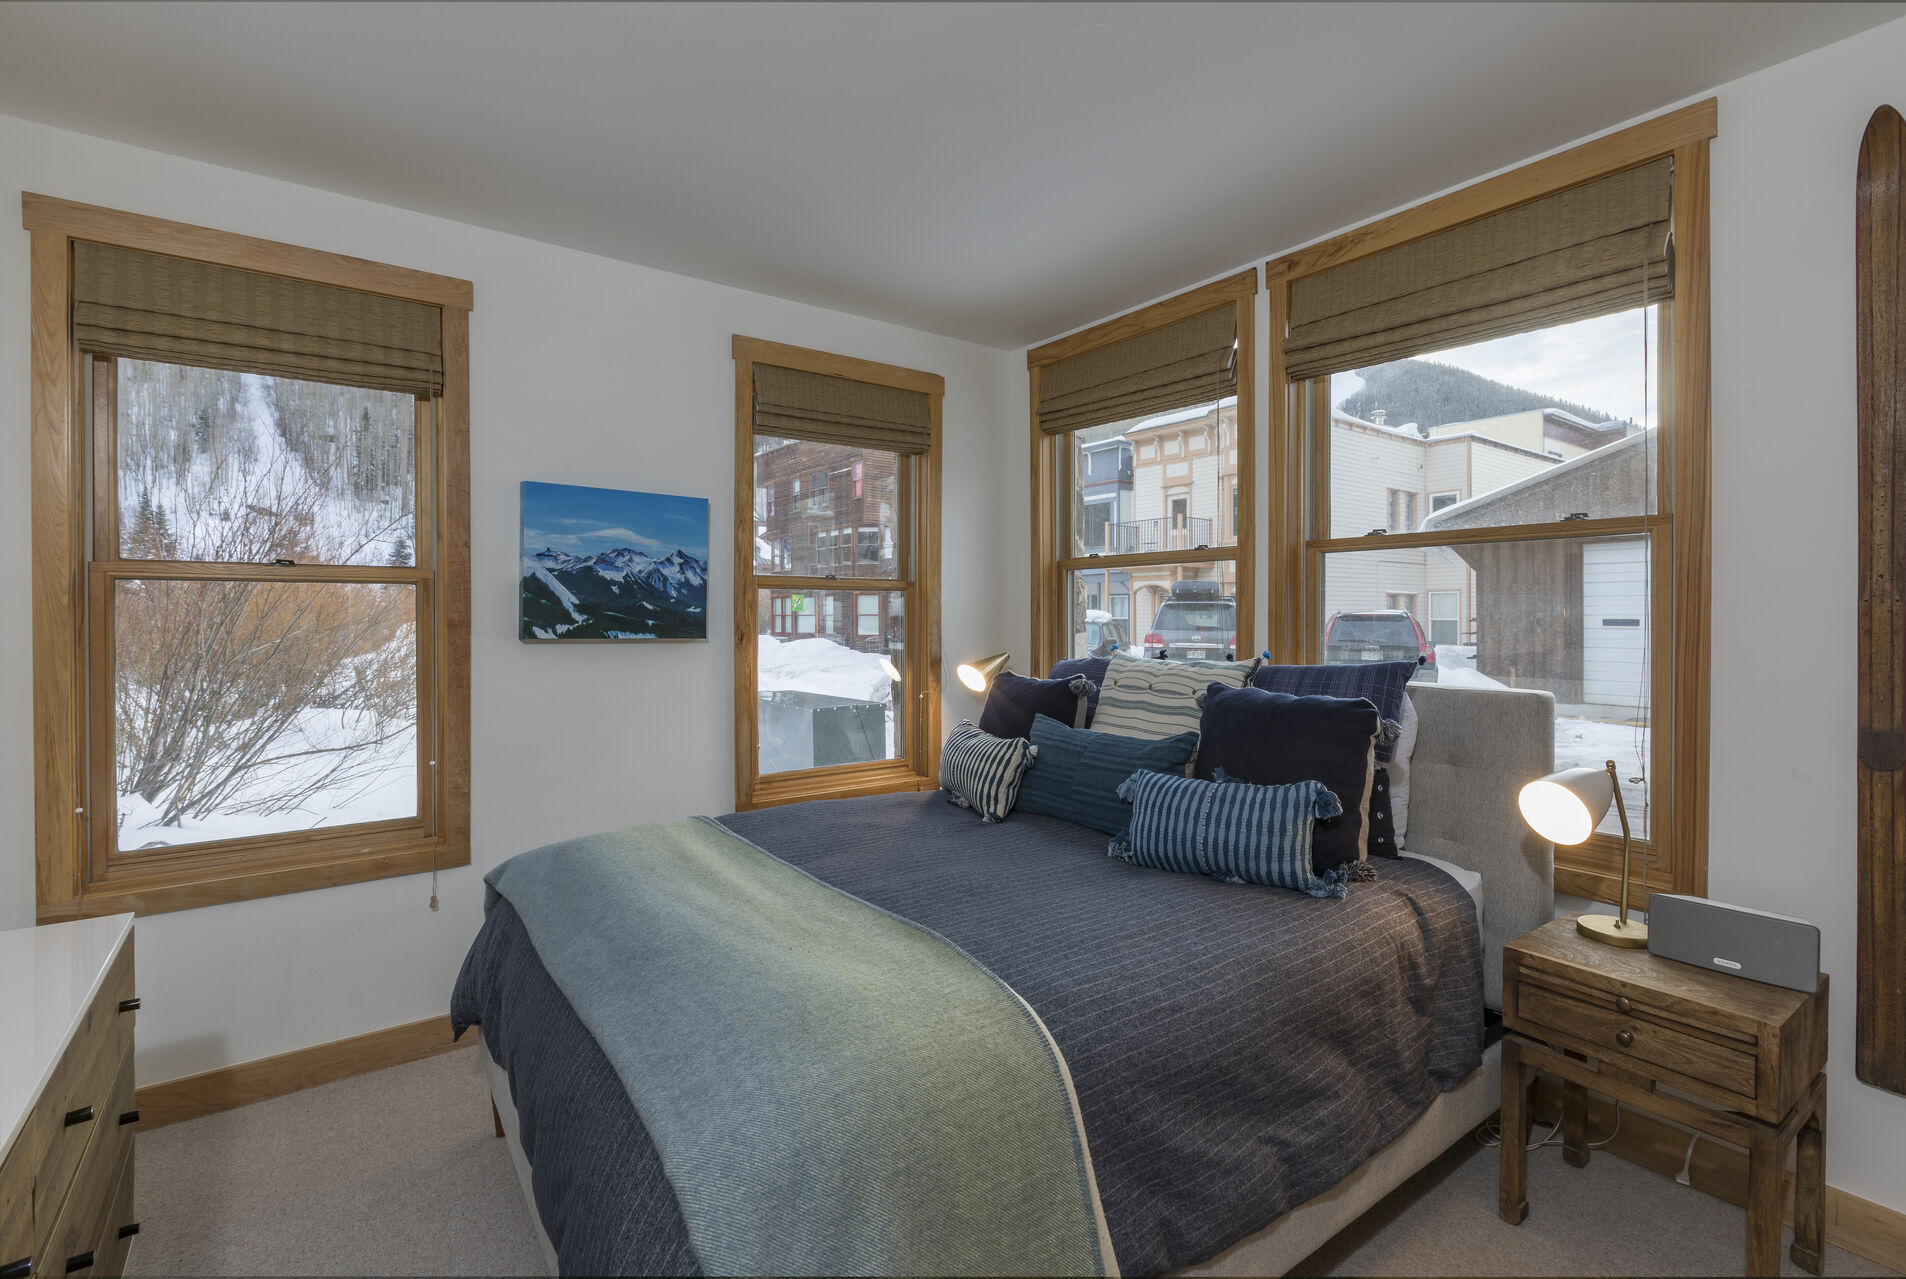 Large bed situated between many large windows, with a nightstand on the side.